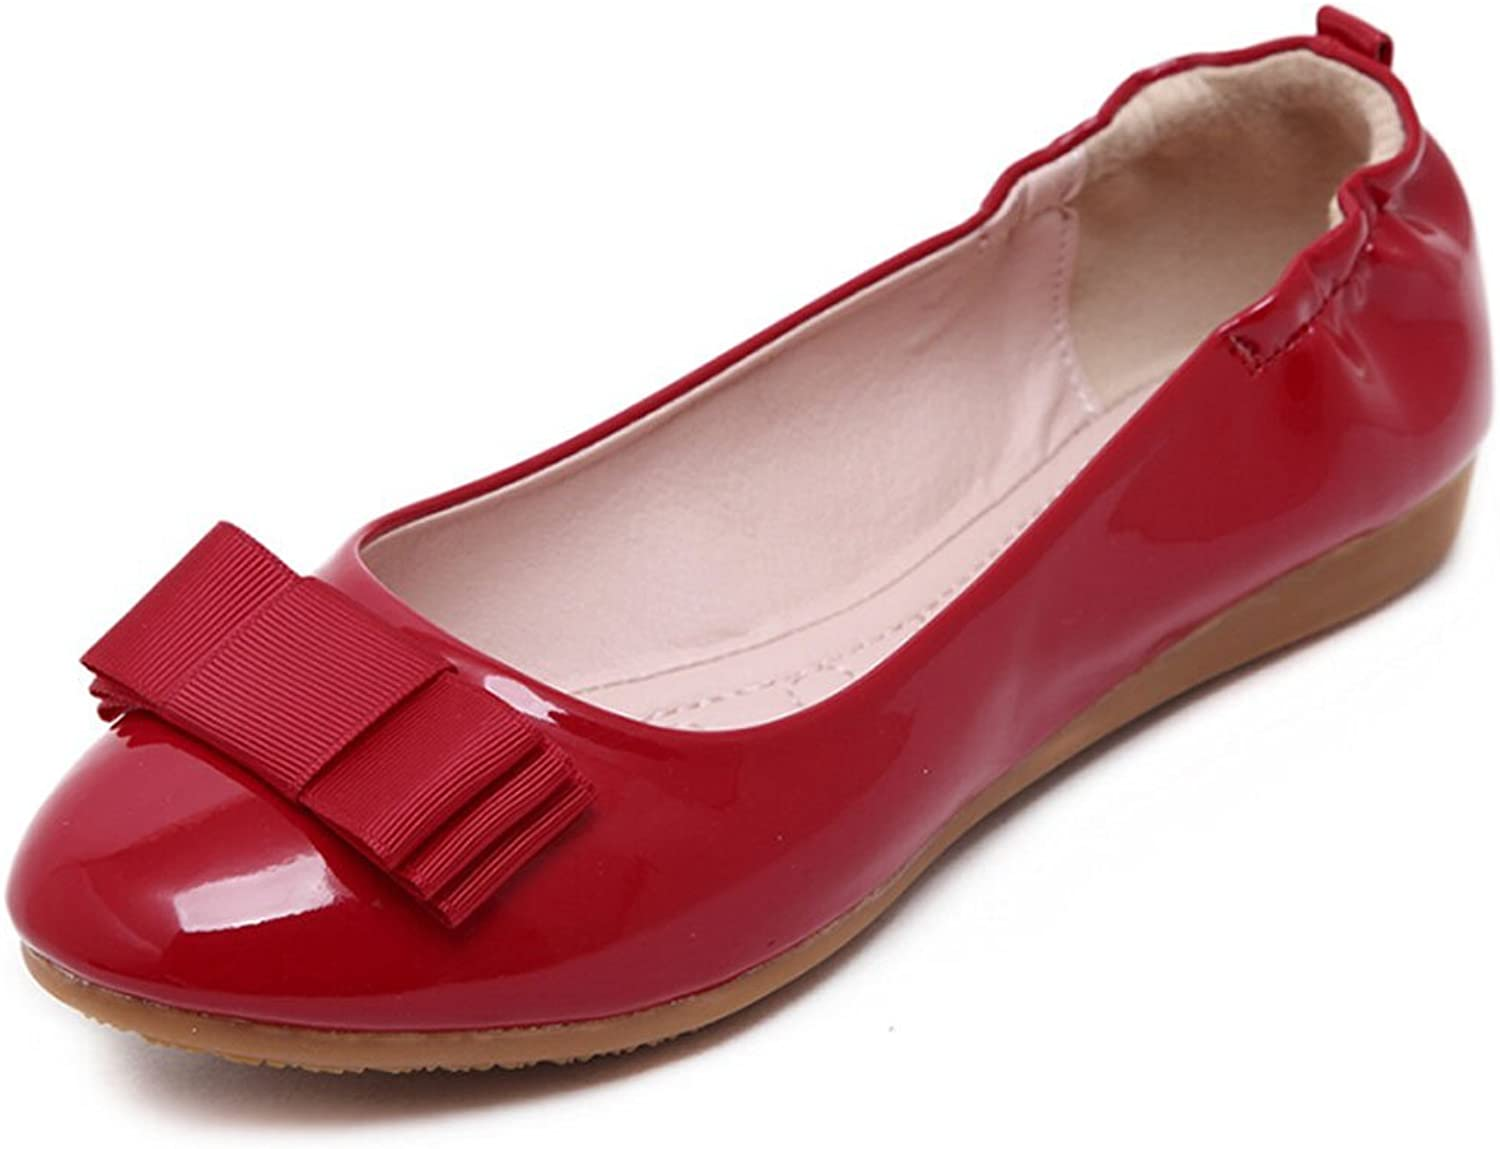 Angelliu Women Sweet Bowknot Leather Foldable Ballet shoes Loafer Flats Red